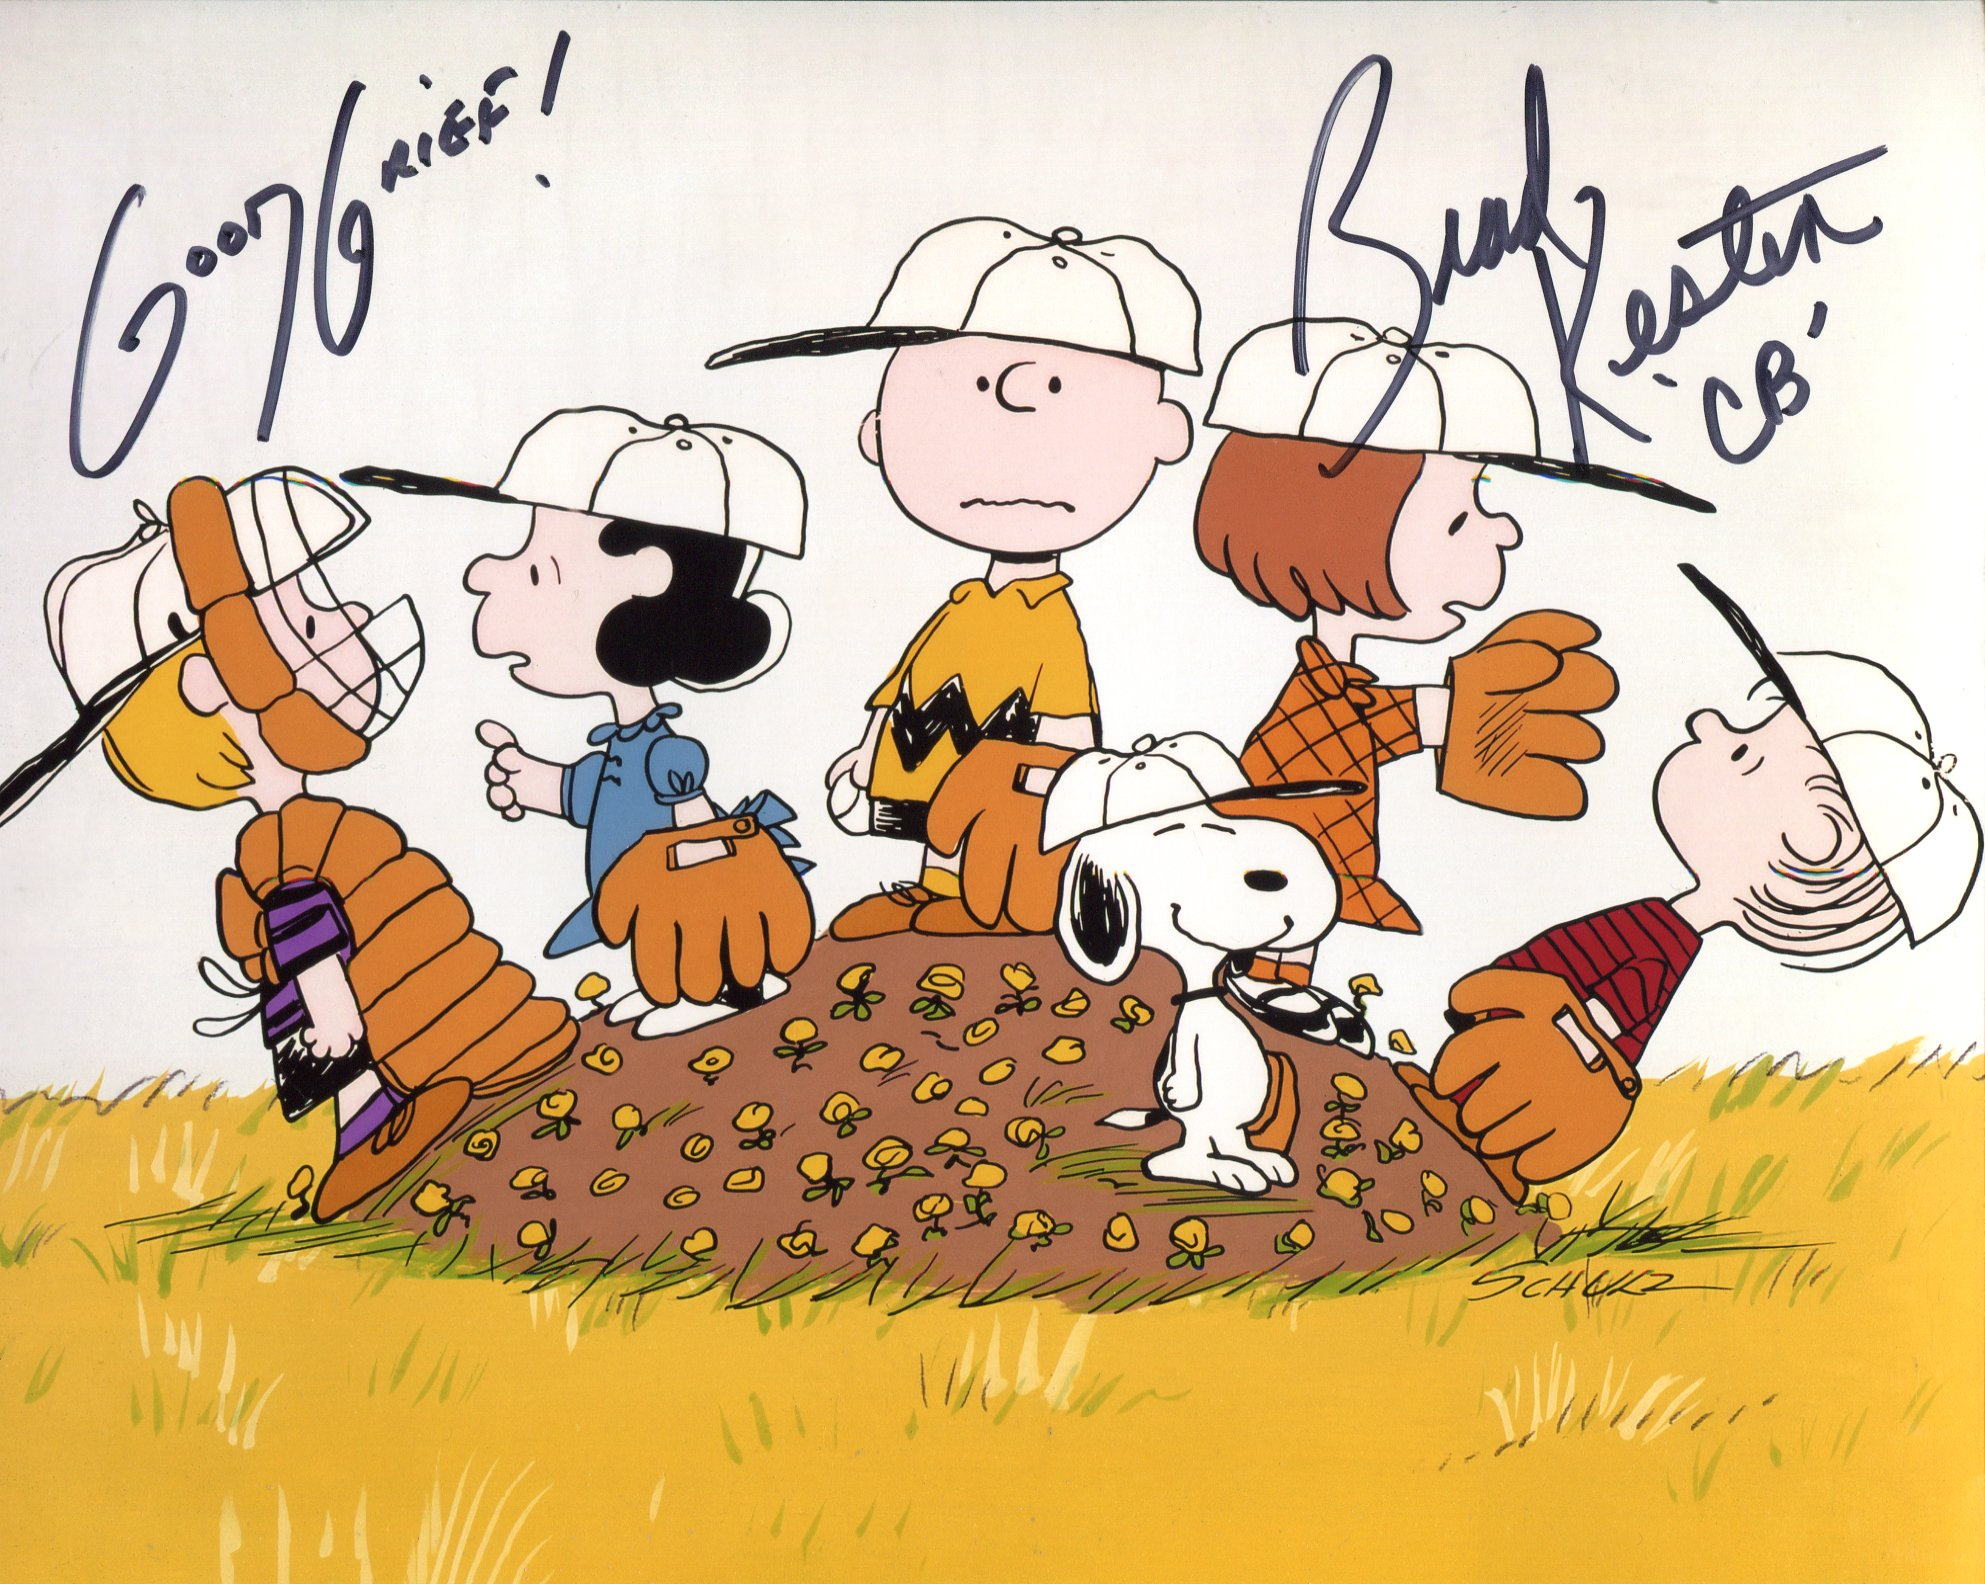 Peanuts & Charlie Brown 8x10 photo signed by Brad Kesten, the voice of Charlie Brown. Good